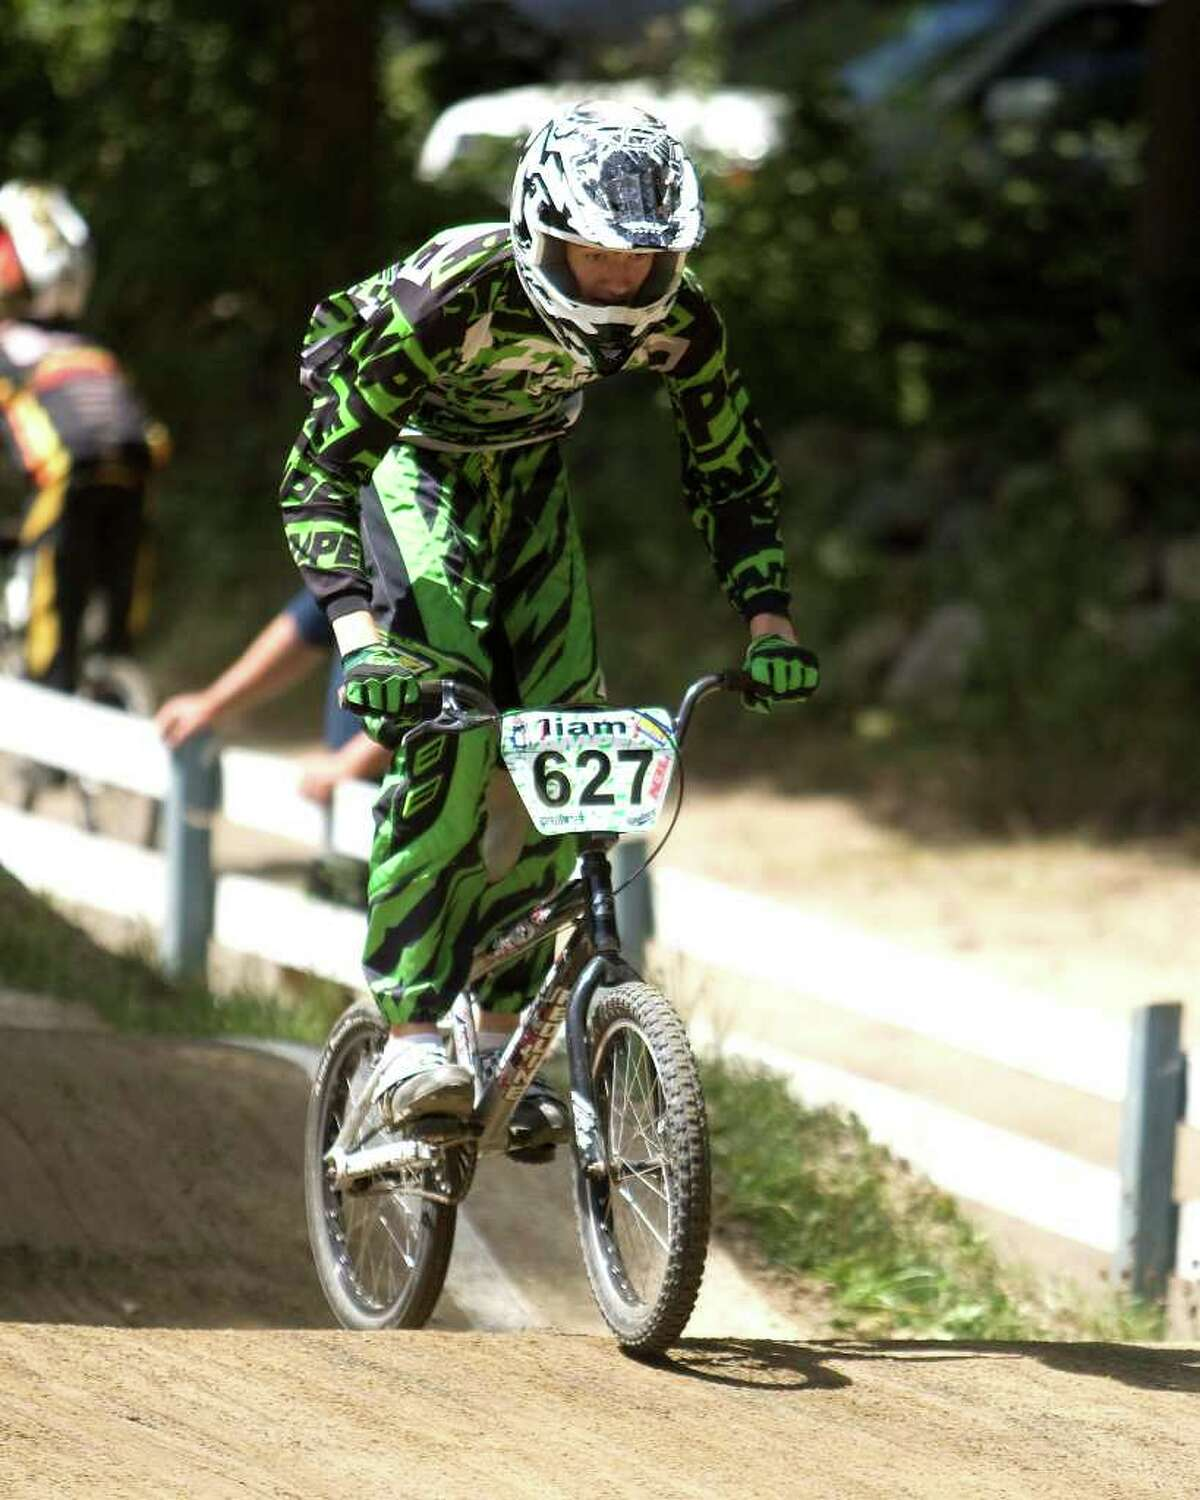 Liam Stone, 16, of New Milford, works hard during competition in the Northeast Regional BMX Championships Saturday at Mitchell Park in Bethel.